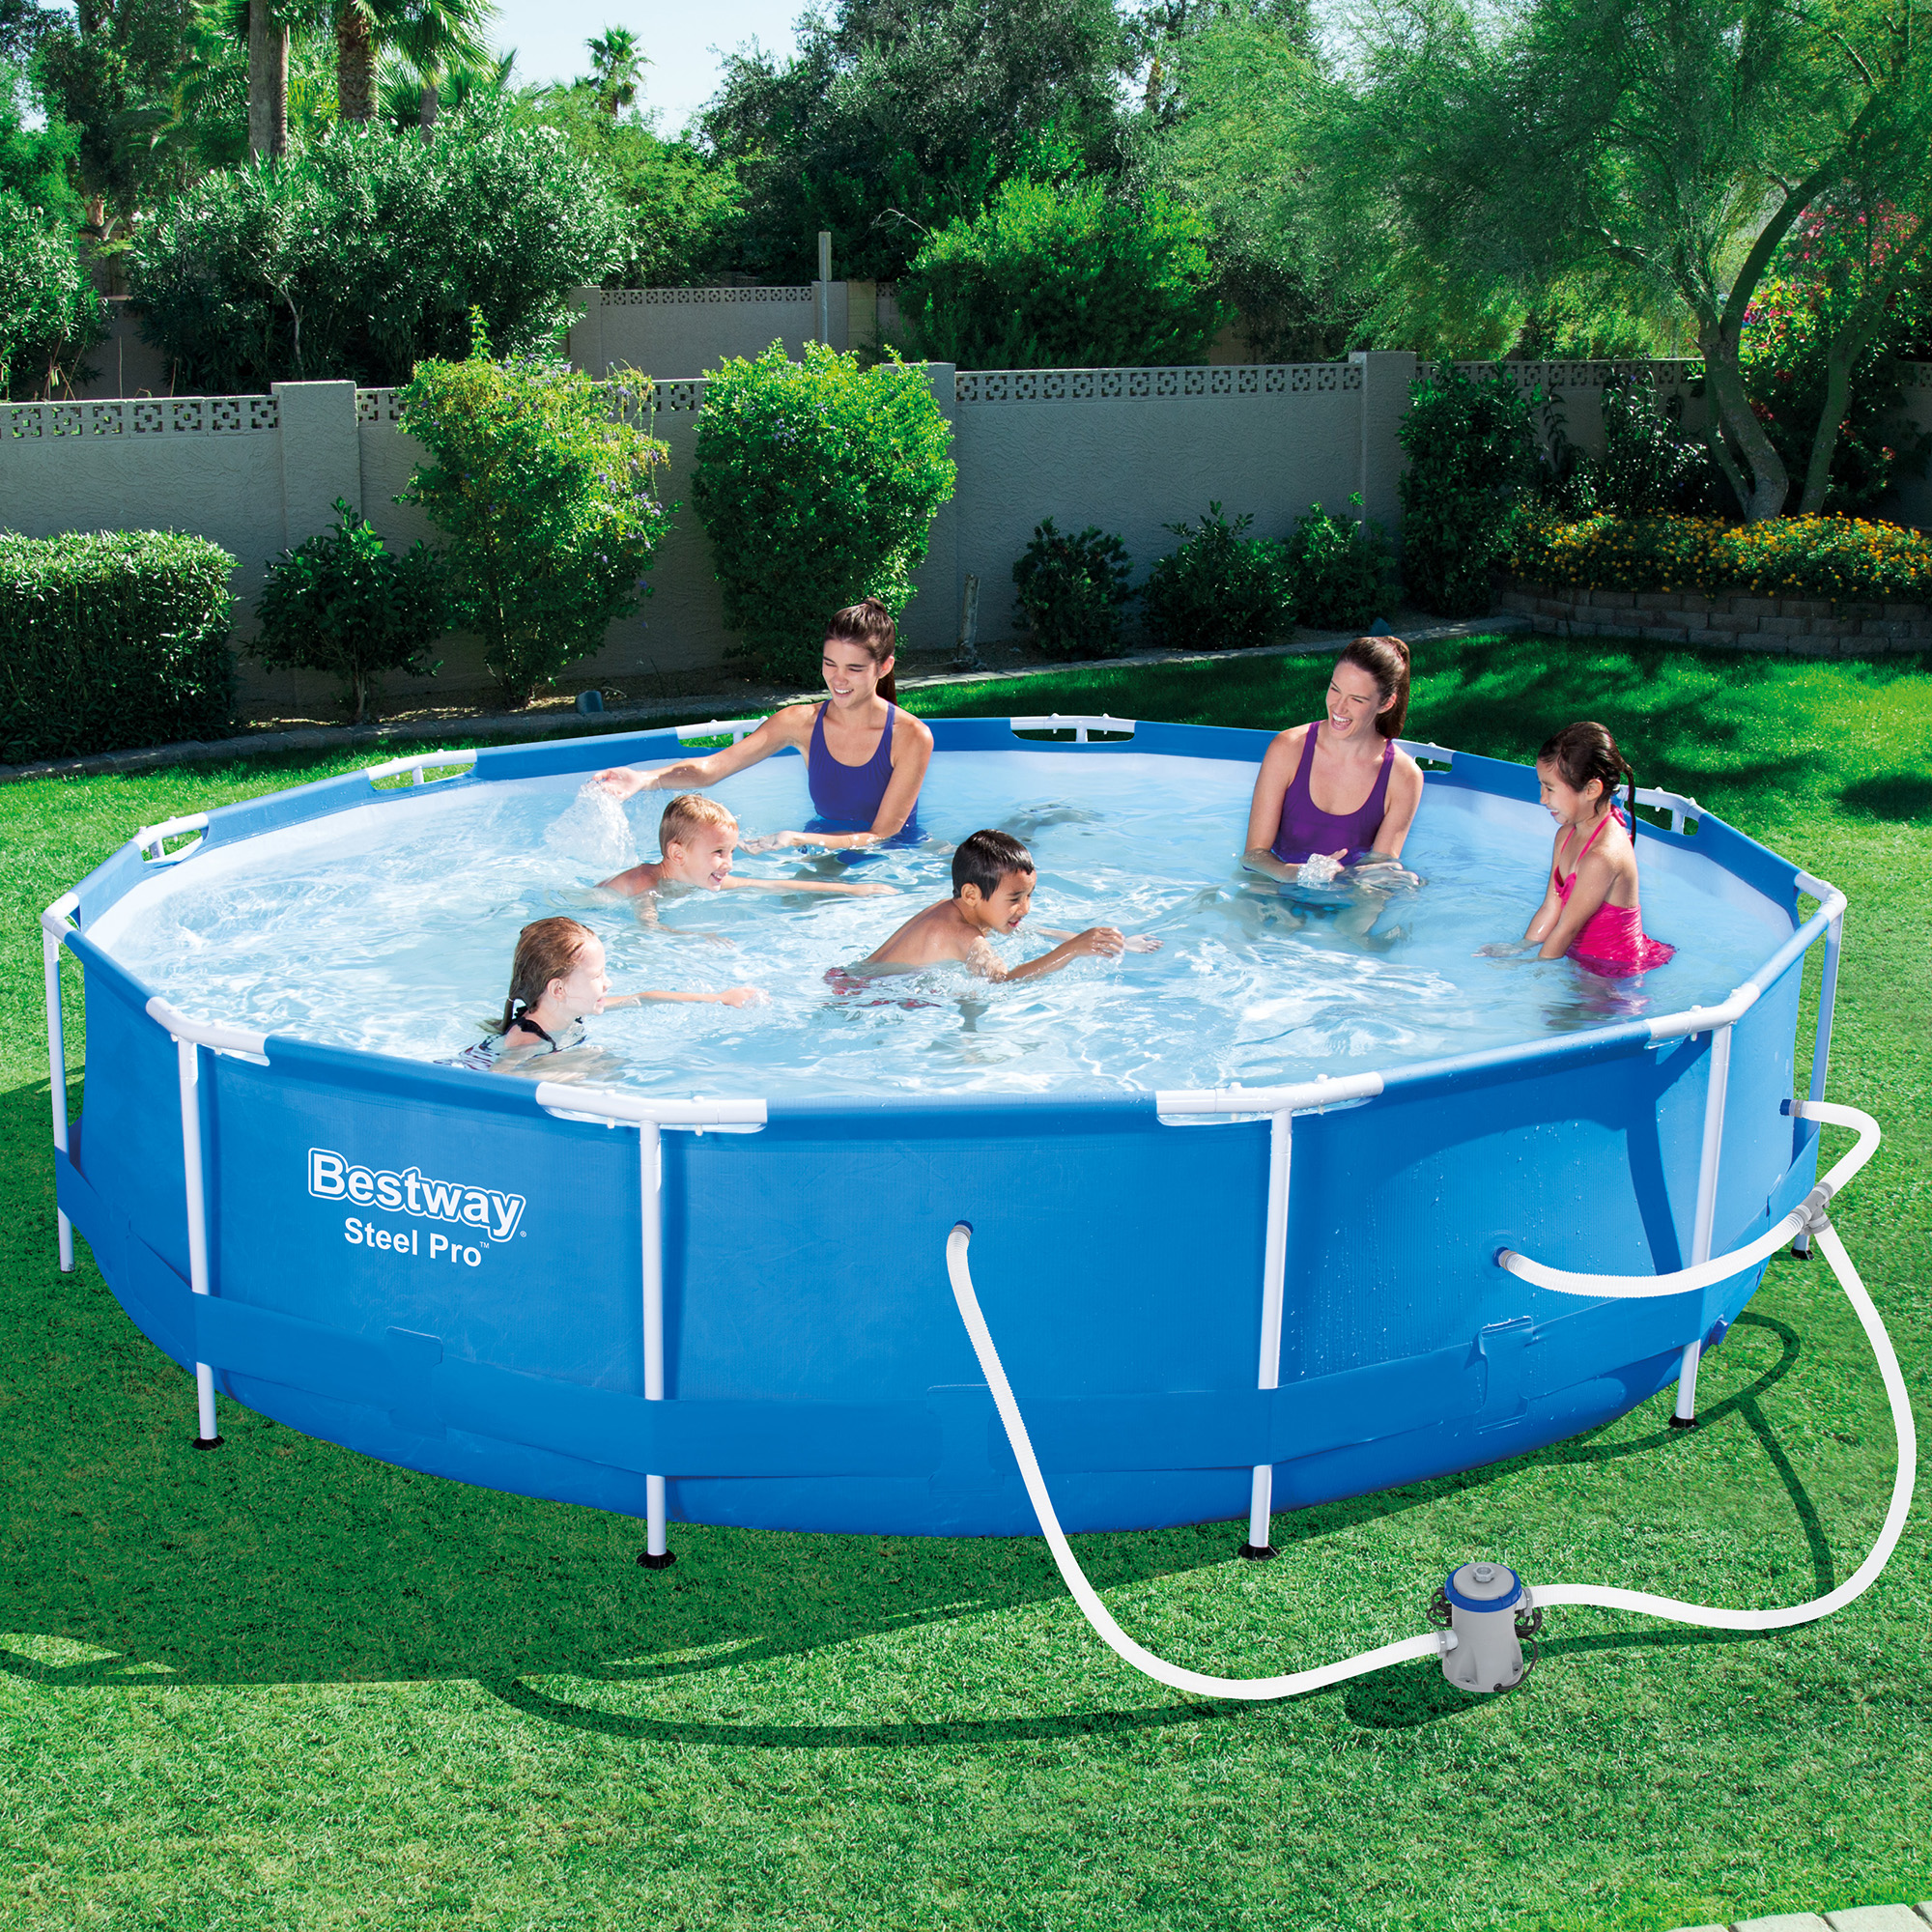 bestway steel pro 12 39 x 30 frame above ground pool set with filter pump ebay. Black Bedroom Furniture Sets. Home Design Ideas